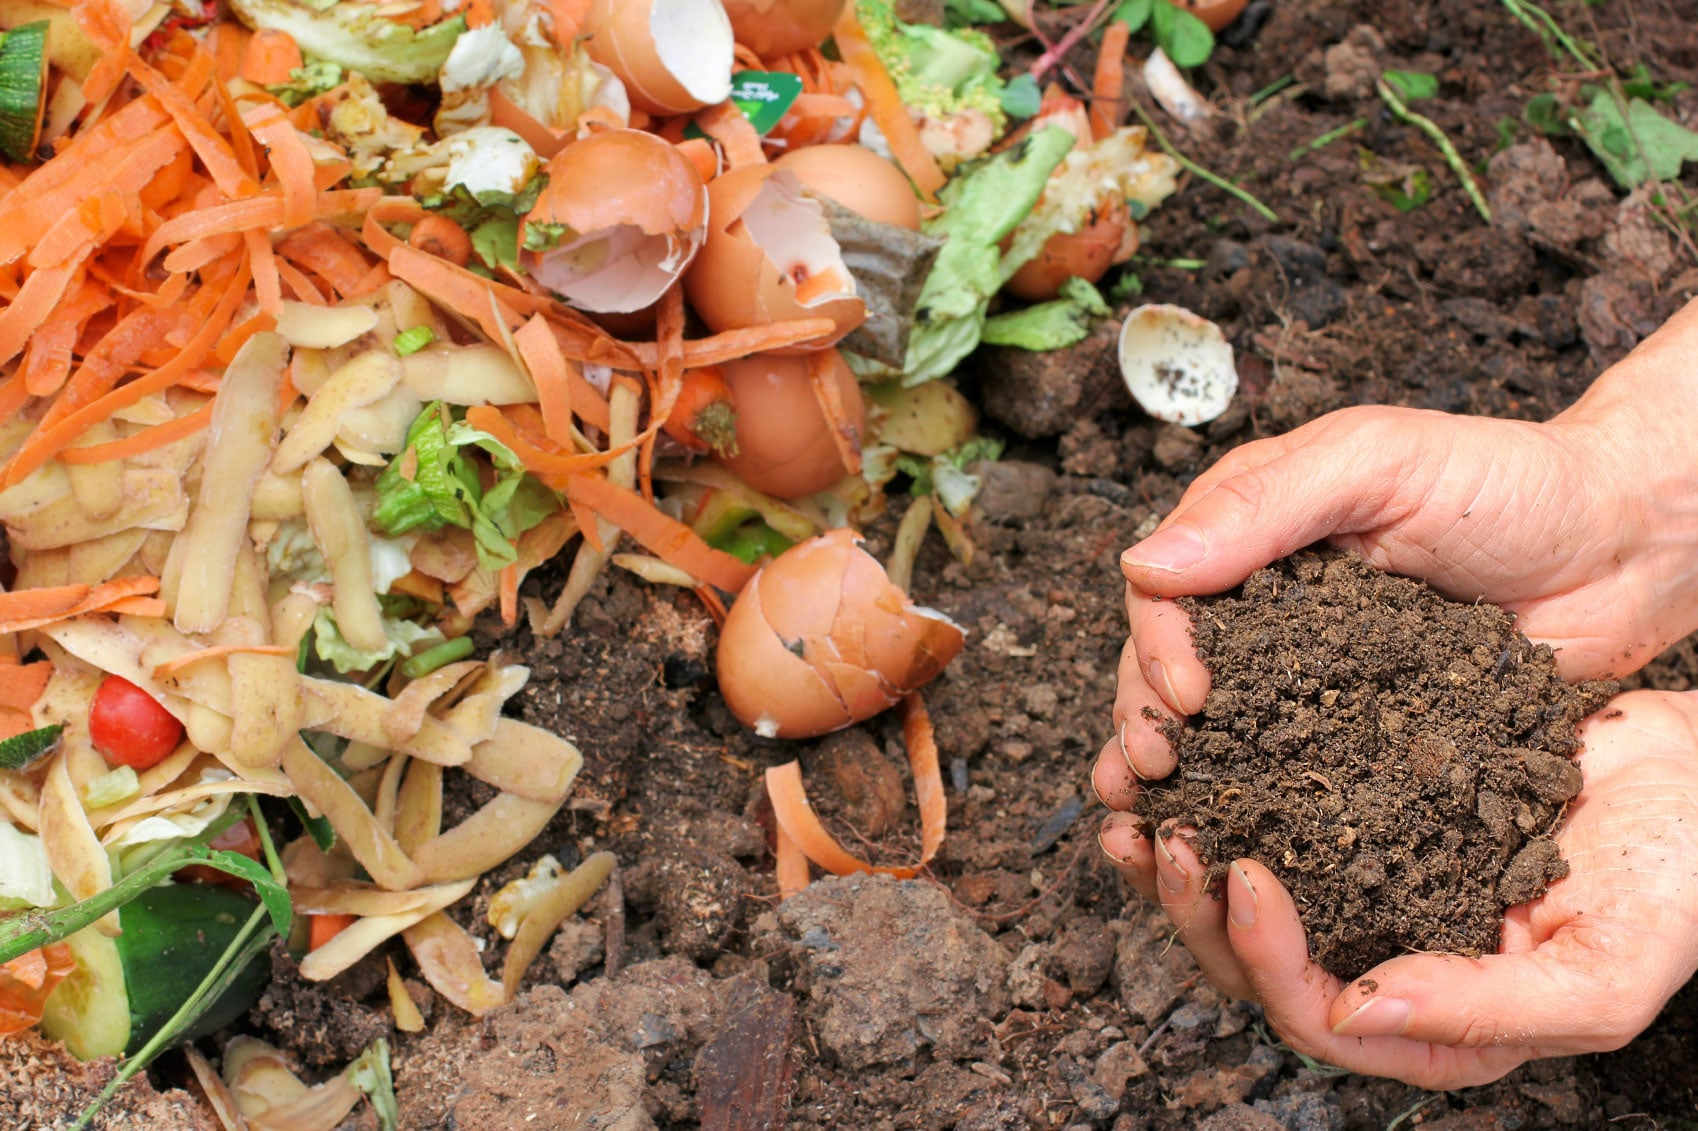 Dispose of organic waste in pots,make compost,use it in kitchen garden